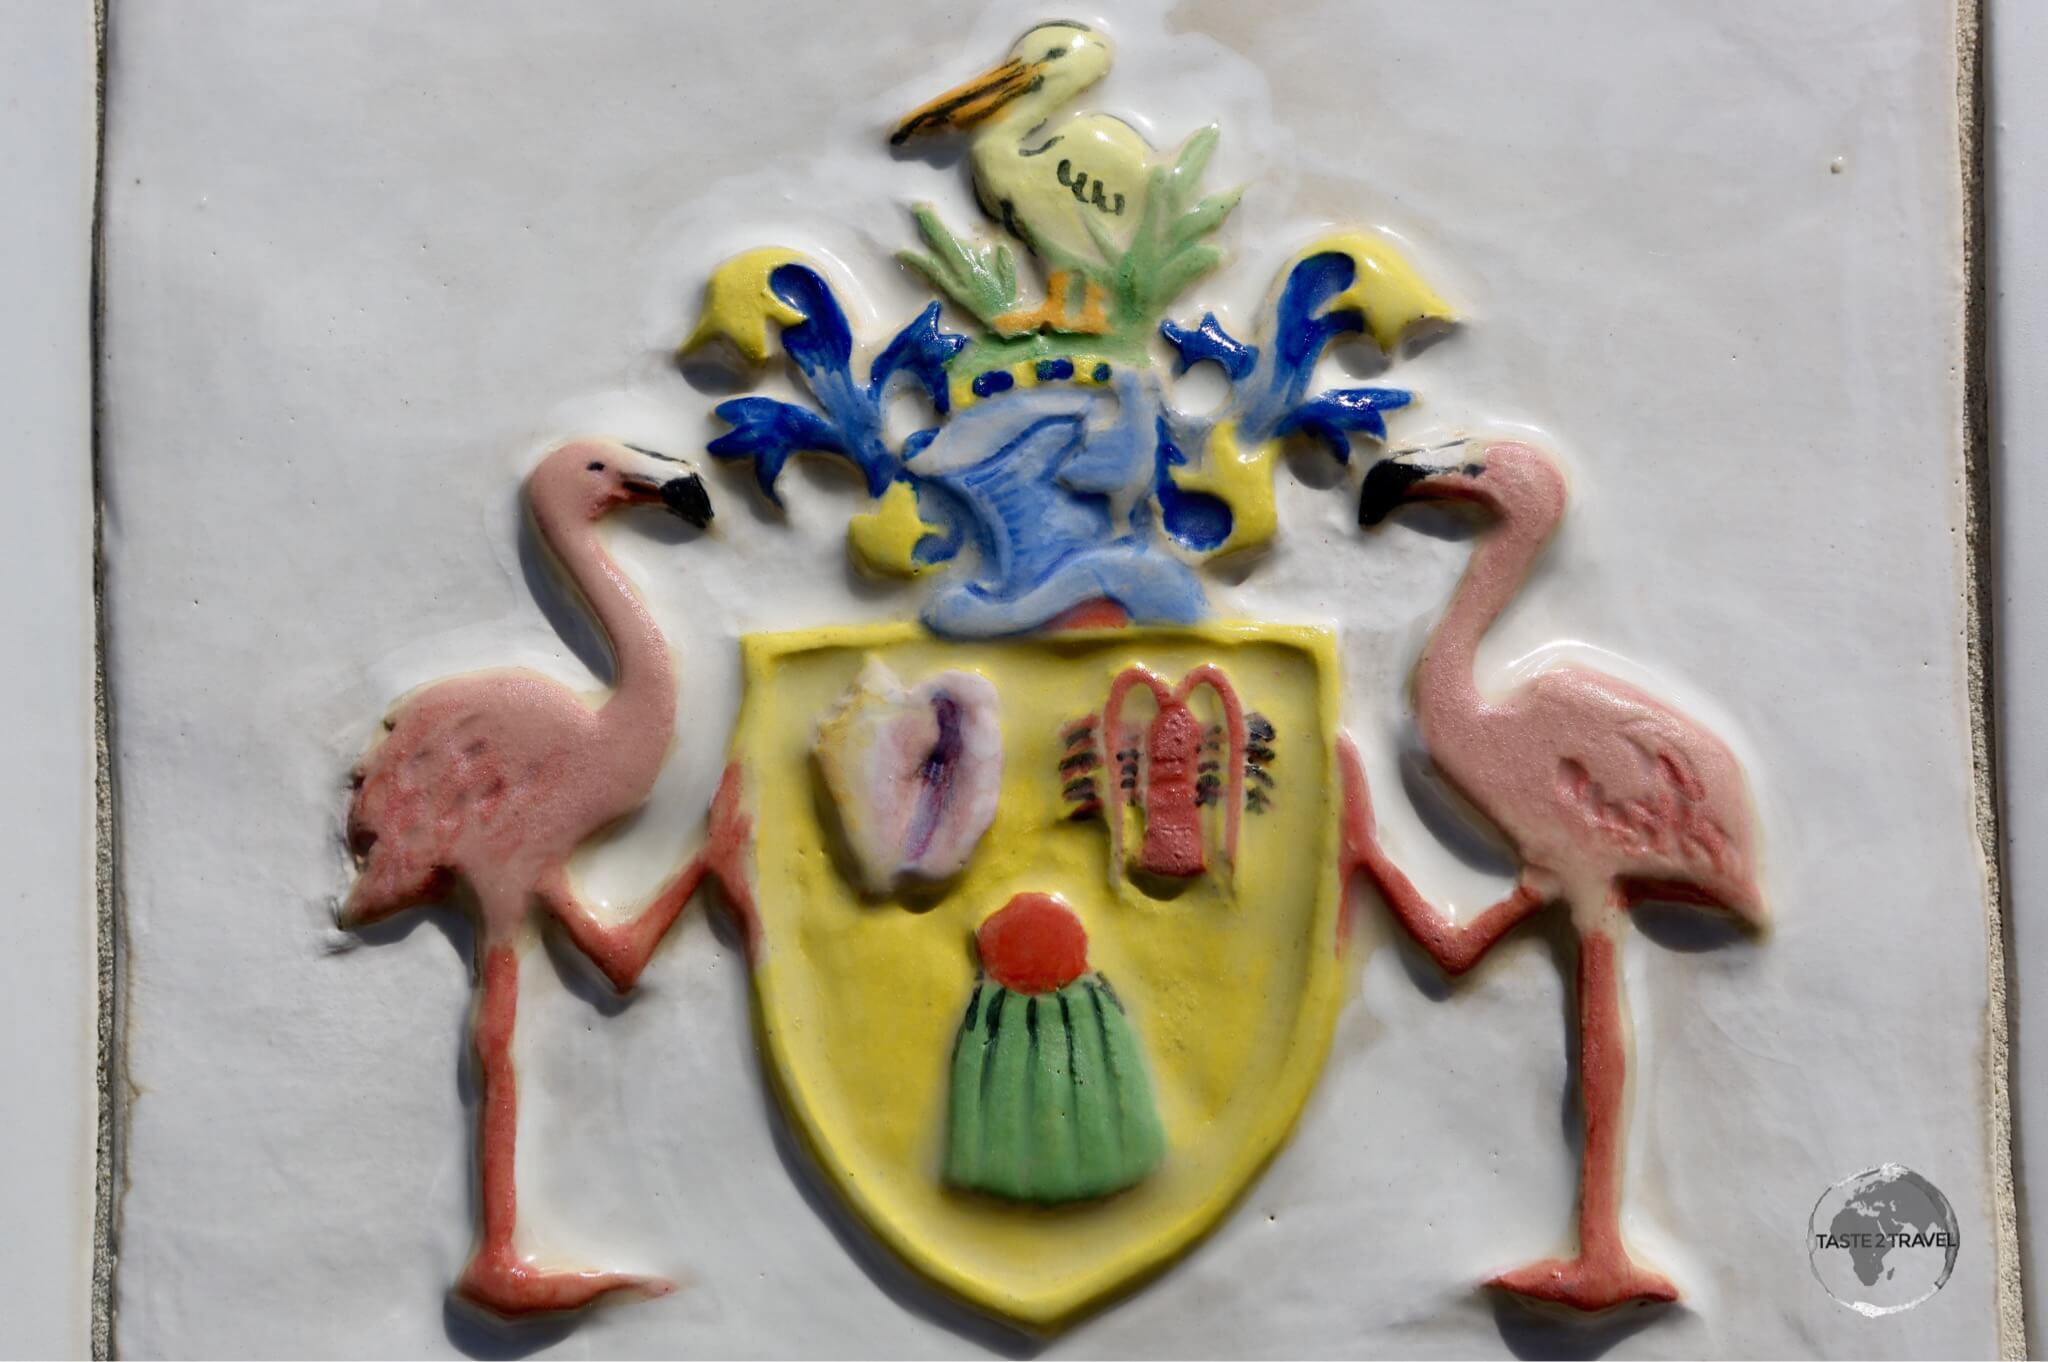 TCI coat of arms which features the Turks Head cactus.